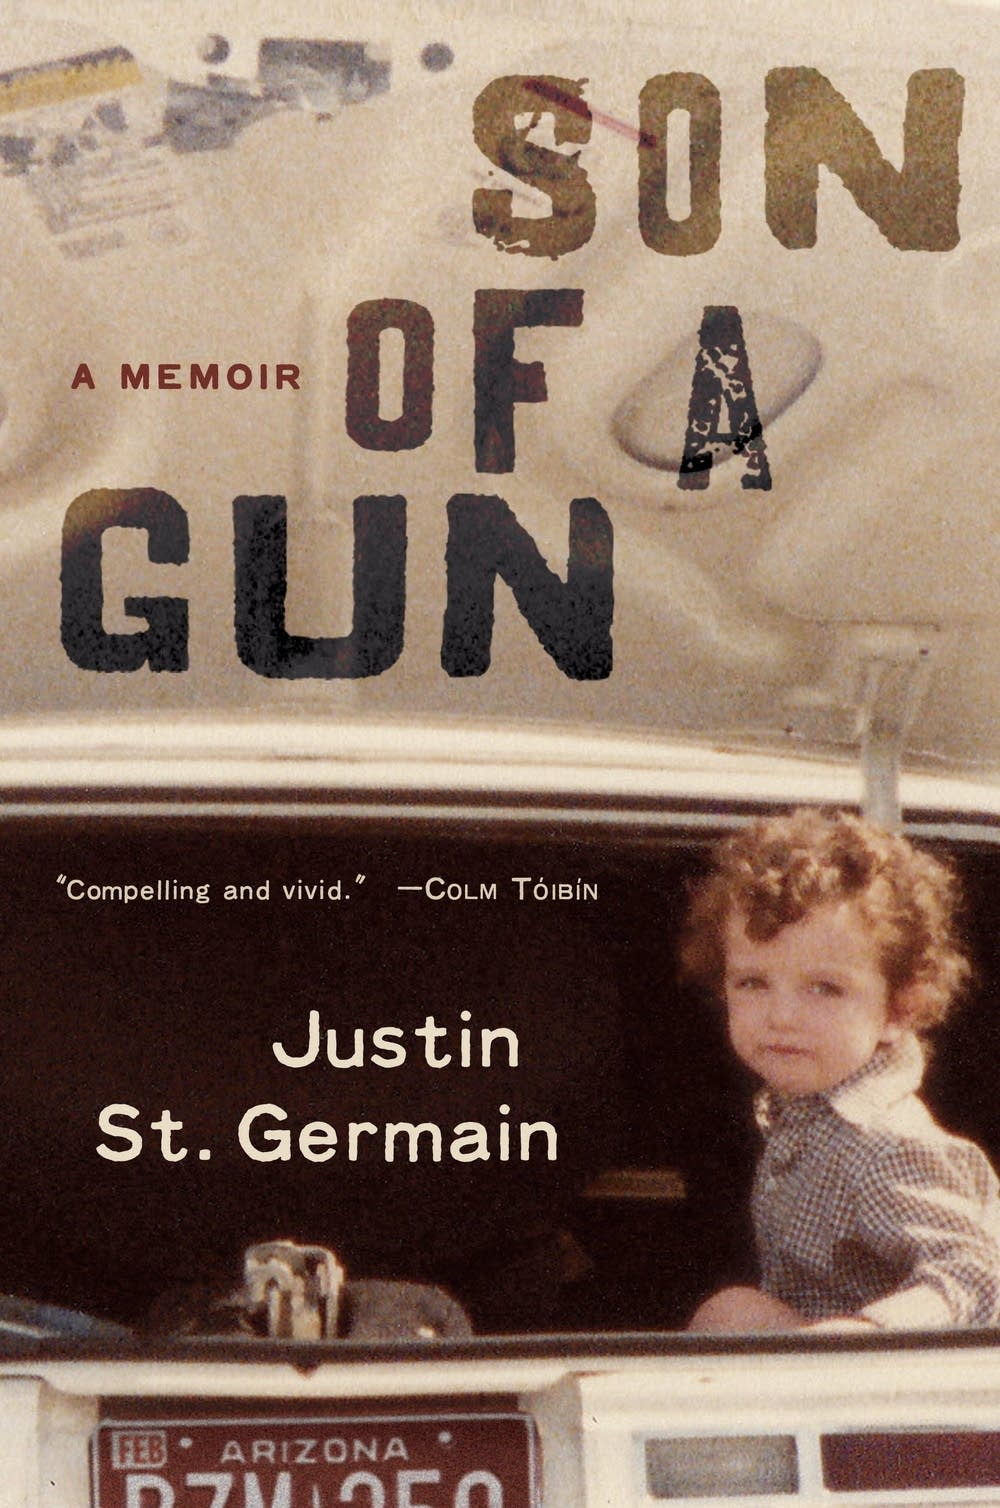 'Son of a Gun' by Justin St. Germain